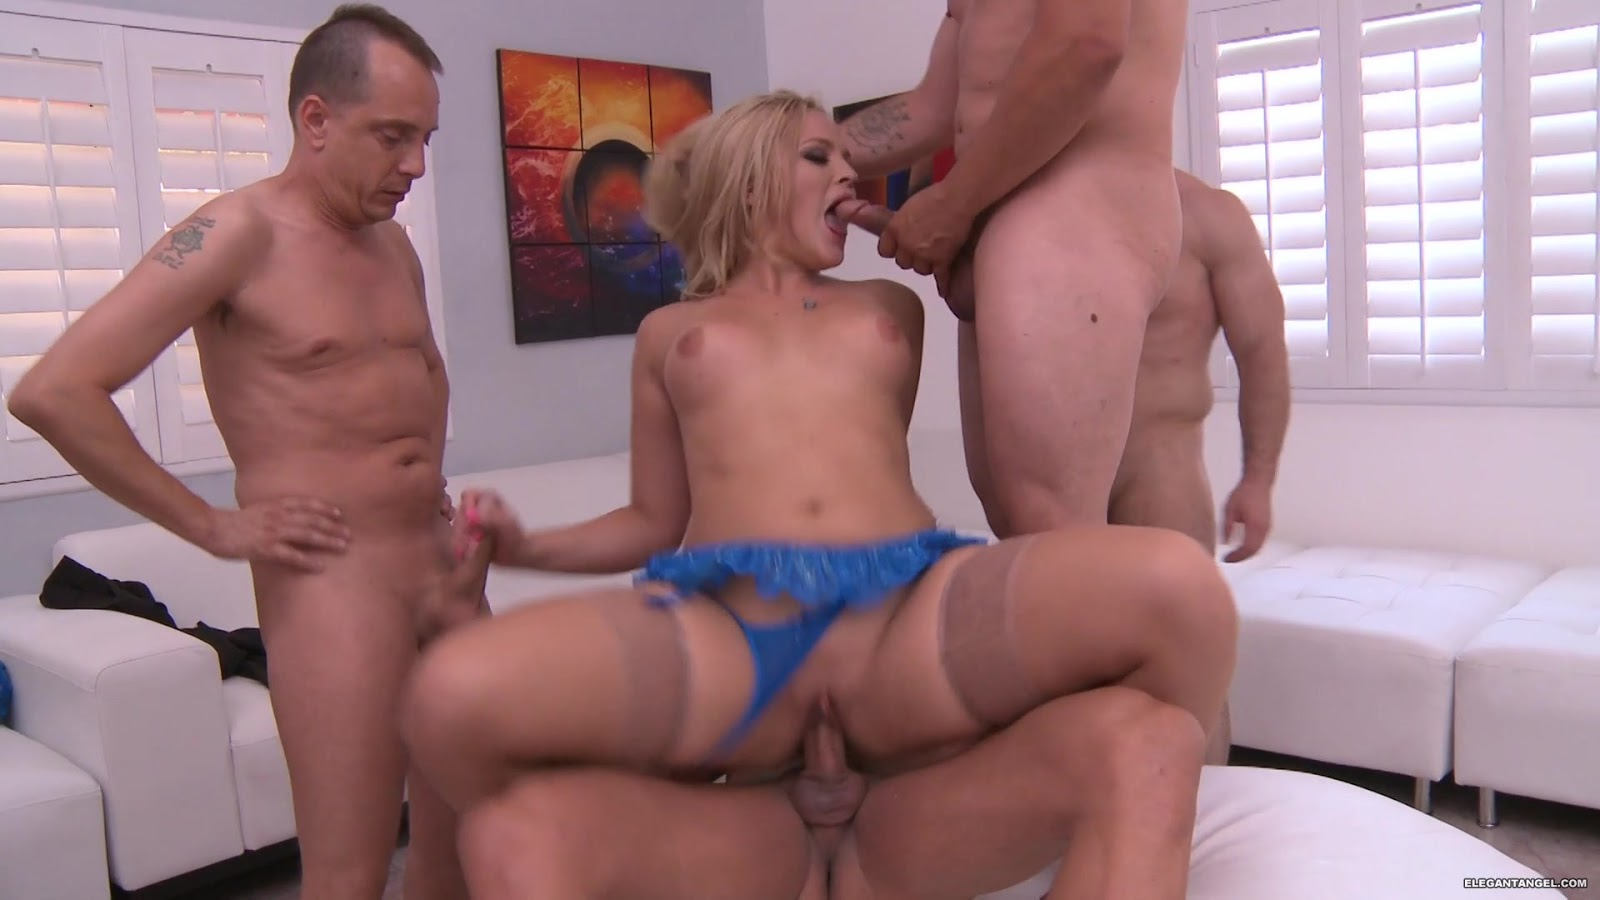 Alexis texas deep banging 4